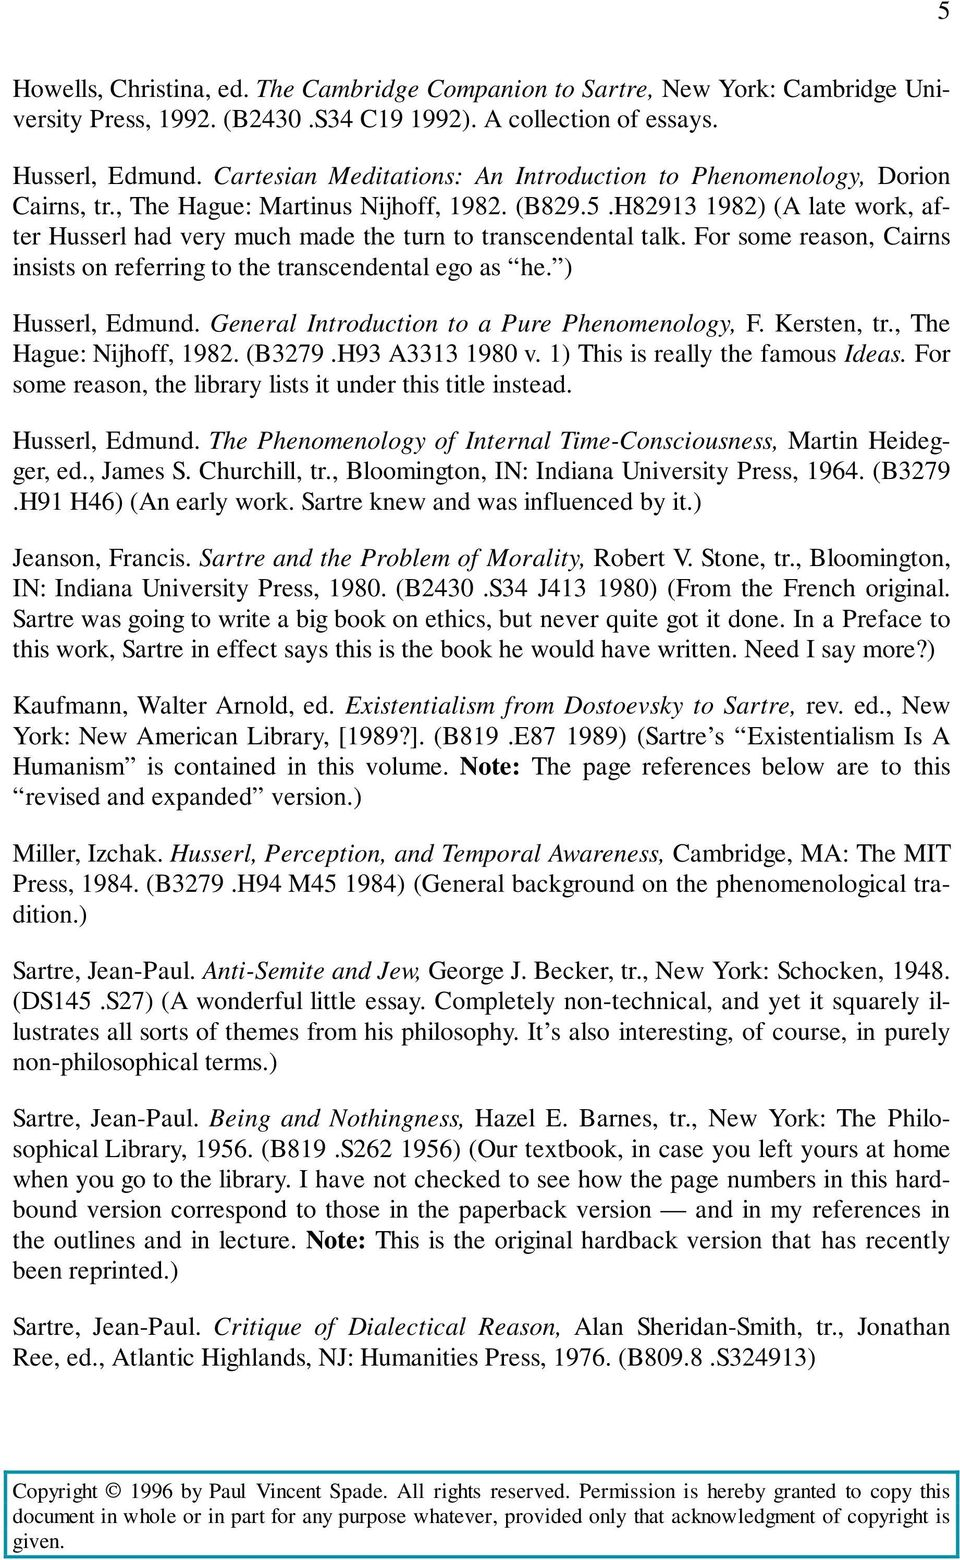 H82913 1982) (A late work, after Husserl had very much made the turn to transcendental talk. For some reason, Cairns insists on referring to the transcendental ego as he. ) Husserl, Edmund.